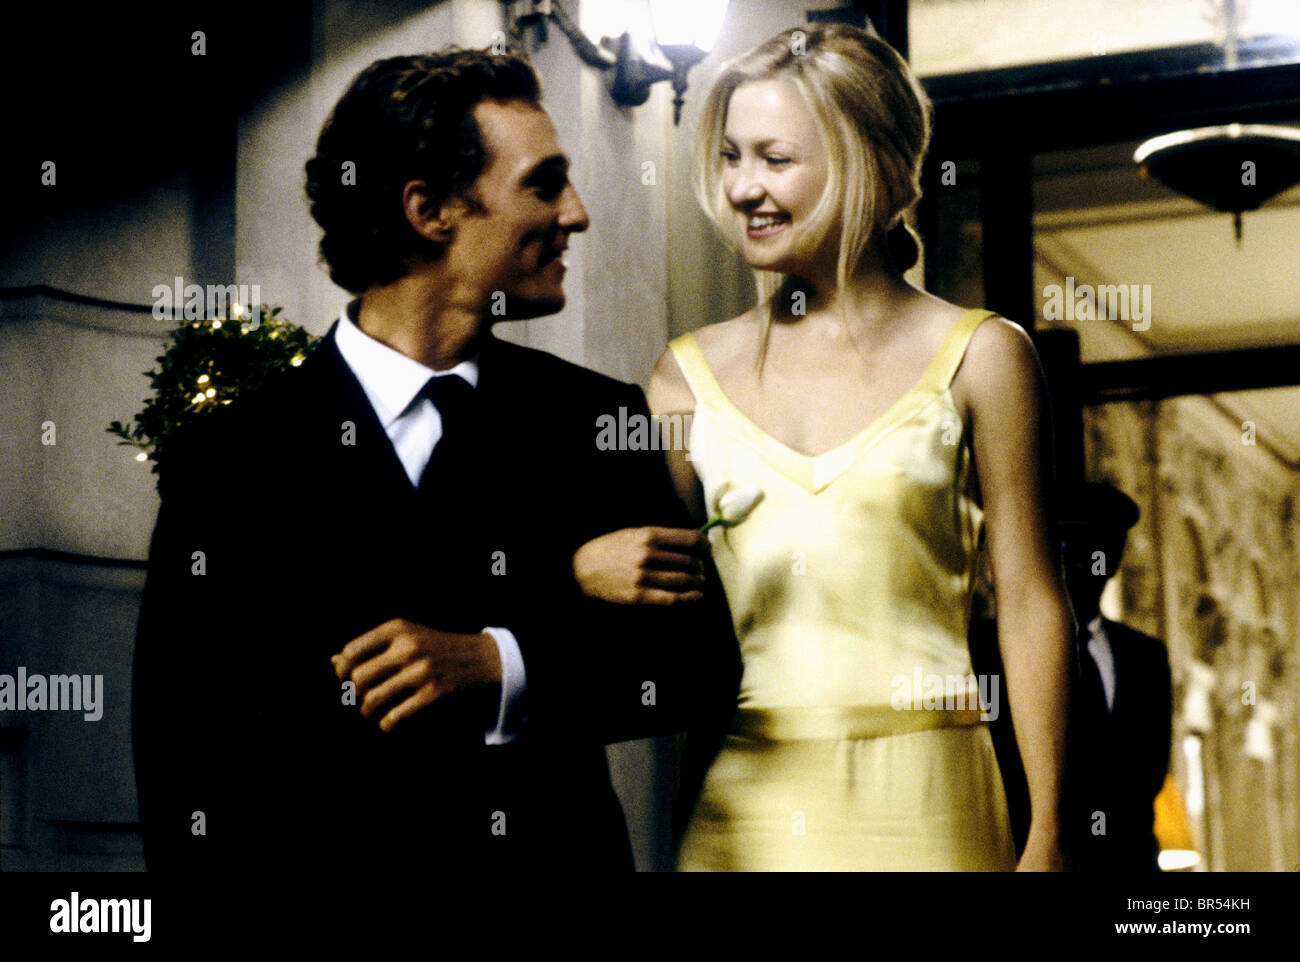 Matthew Mcconaughey Kate Hudson How To Lose A Guy In 10 Days 2003 Stock Photo Alamy